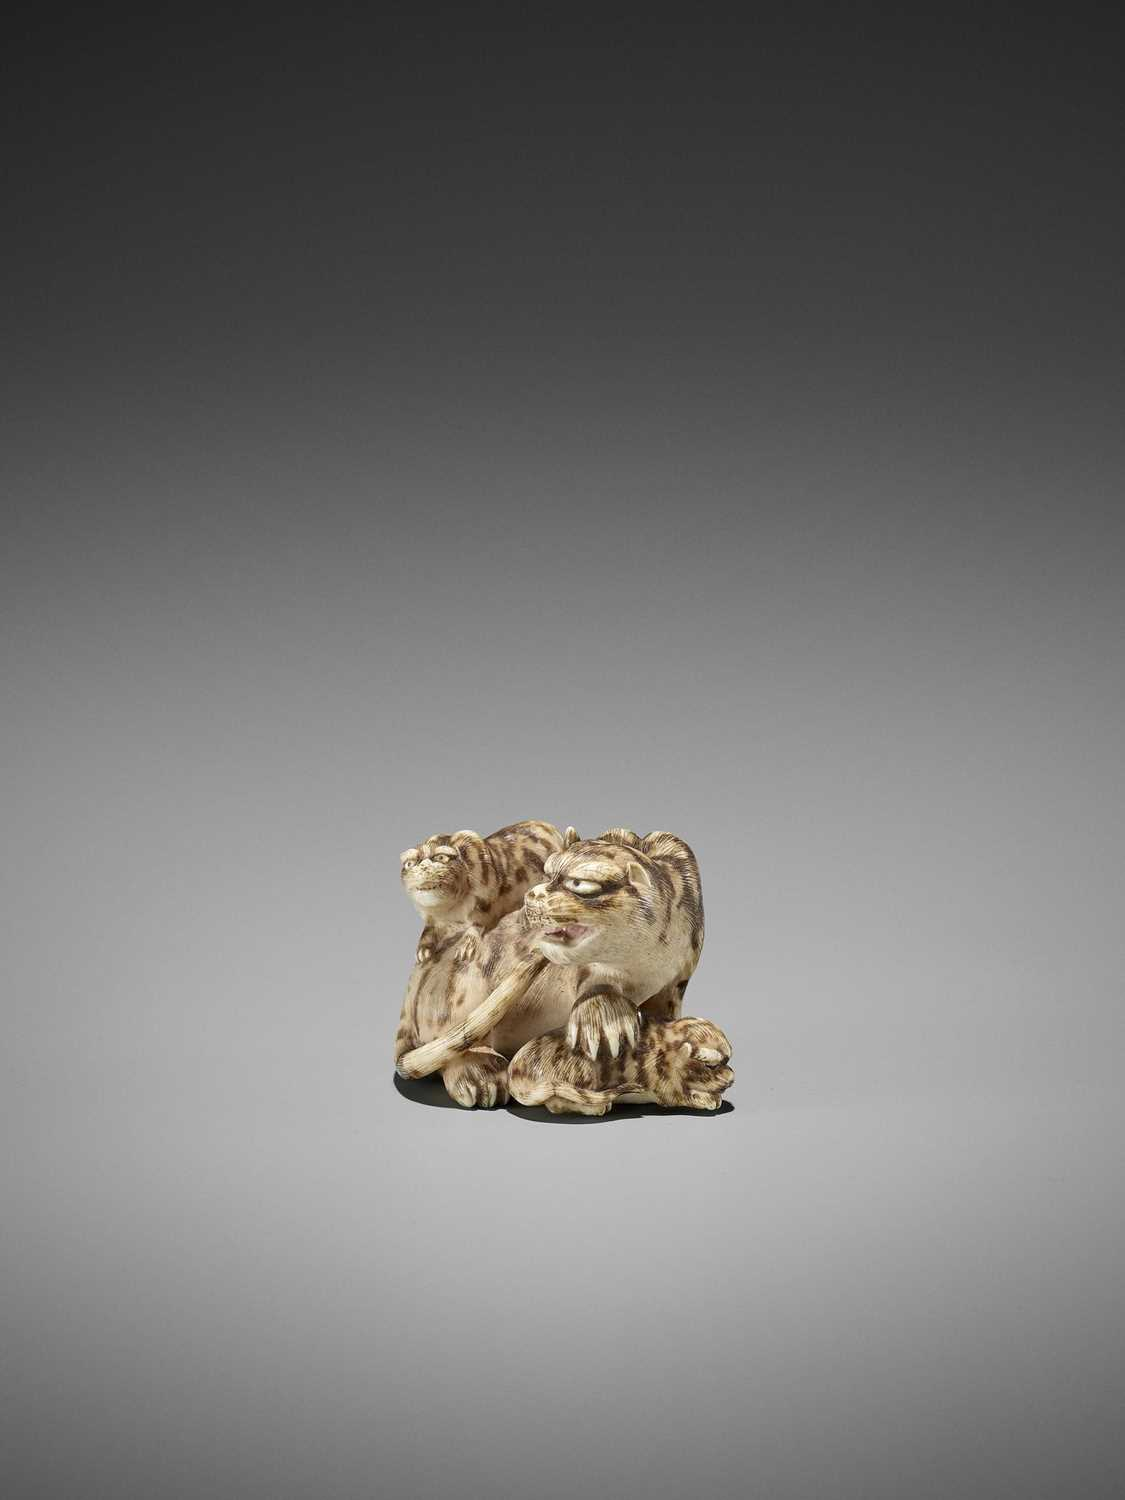 Lot 64-HAKURYU: AN IVORY NETSUKE OF A TIGER WITH TWO CUBS